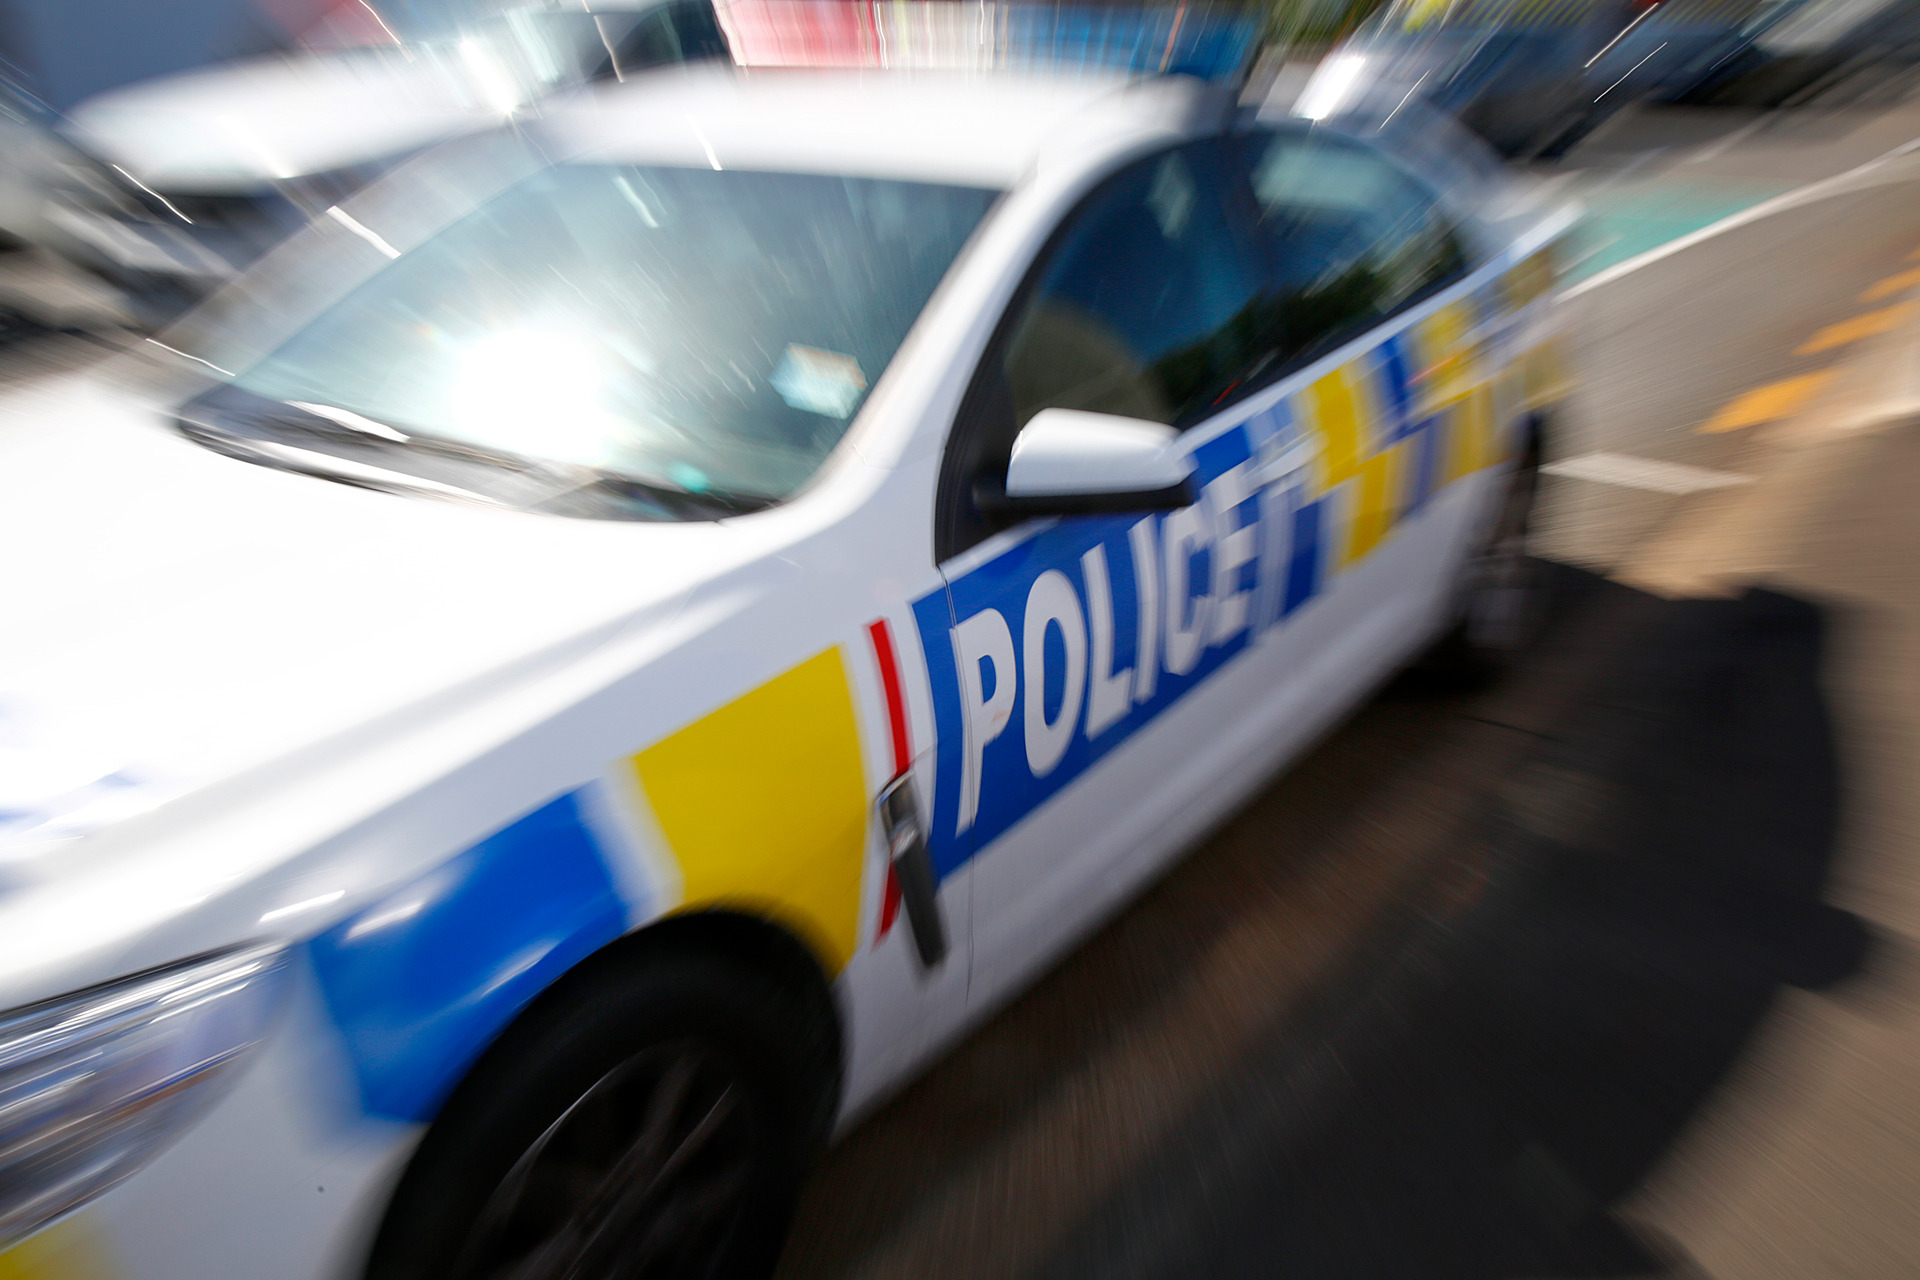 Man charged following assault in Kelston, West Auckland